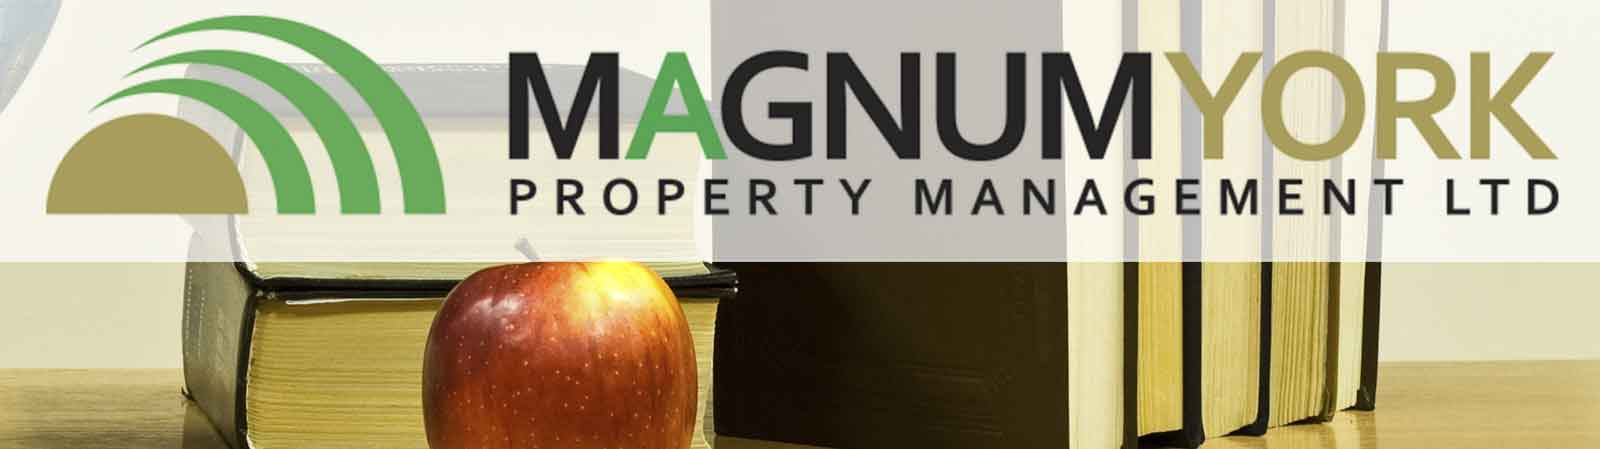 property management education apple books reca cci rei real estate learning alberta